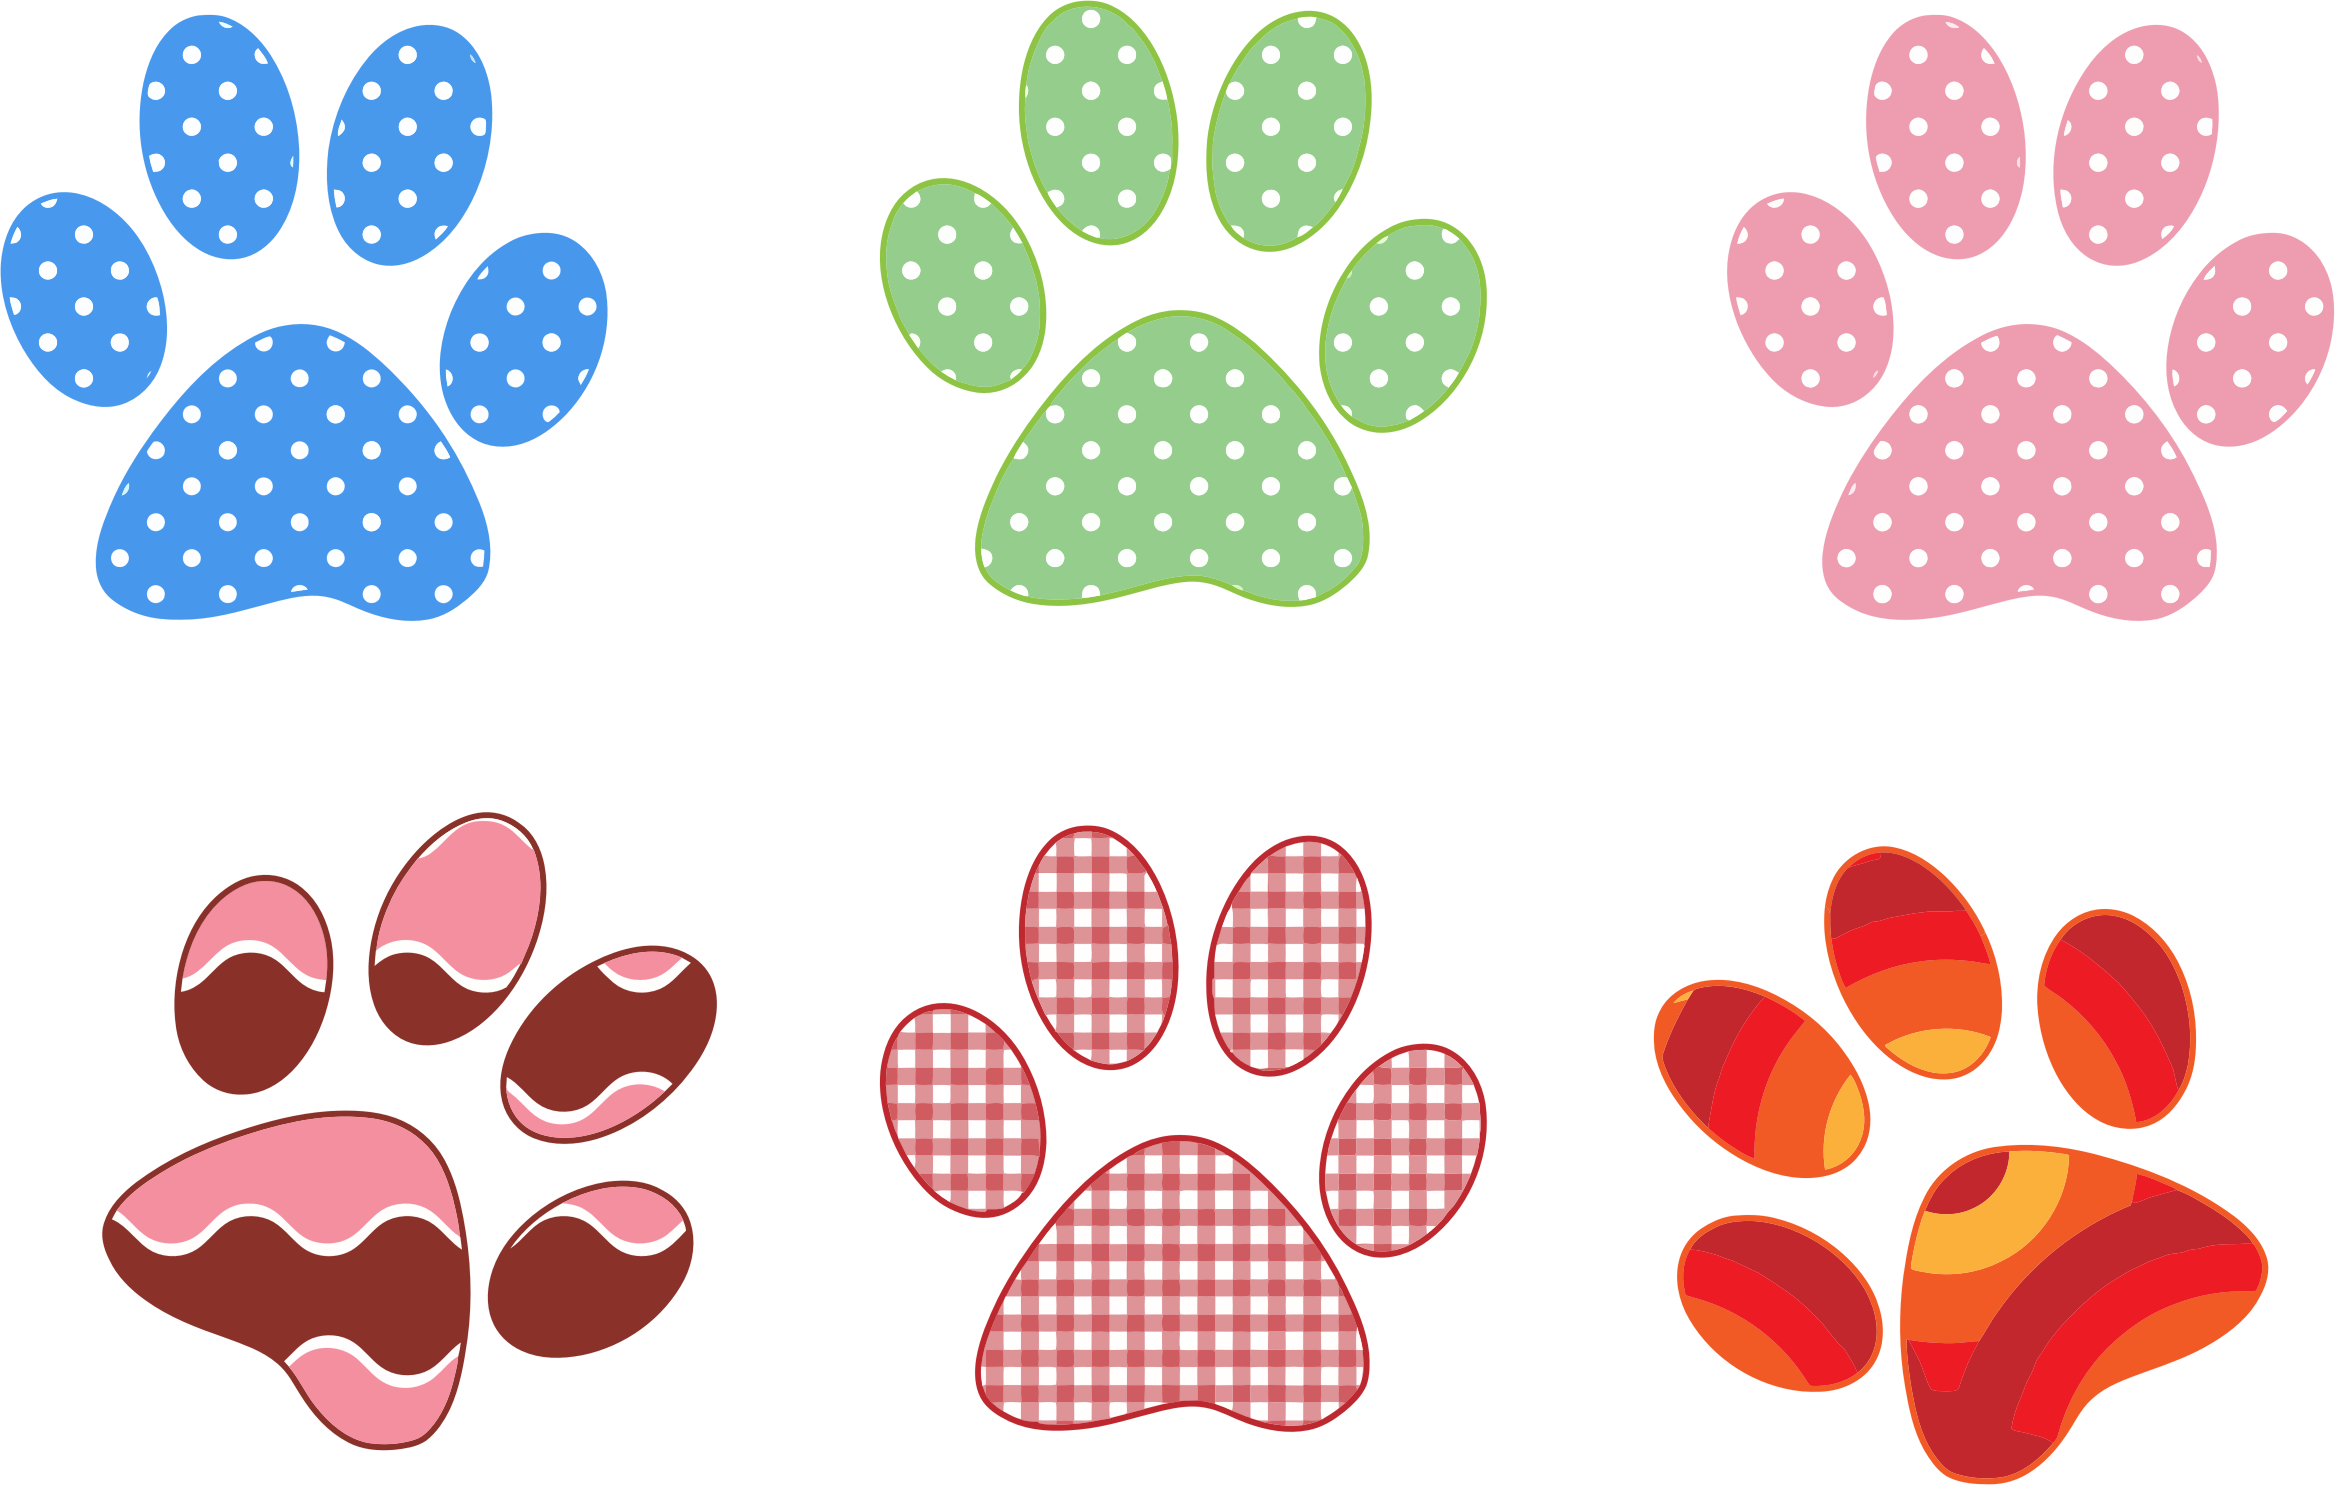 Paw print png transparent. Colorful prints icons free